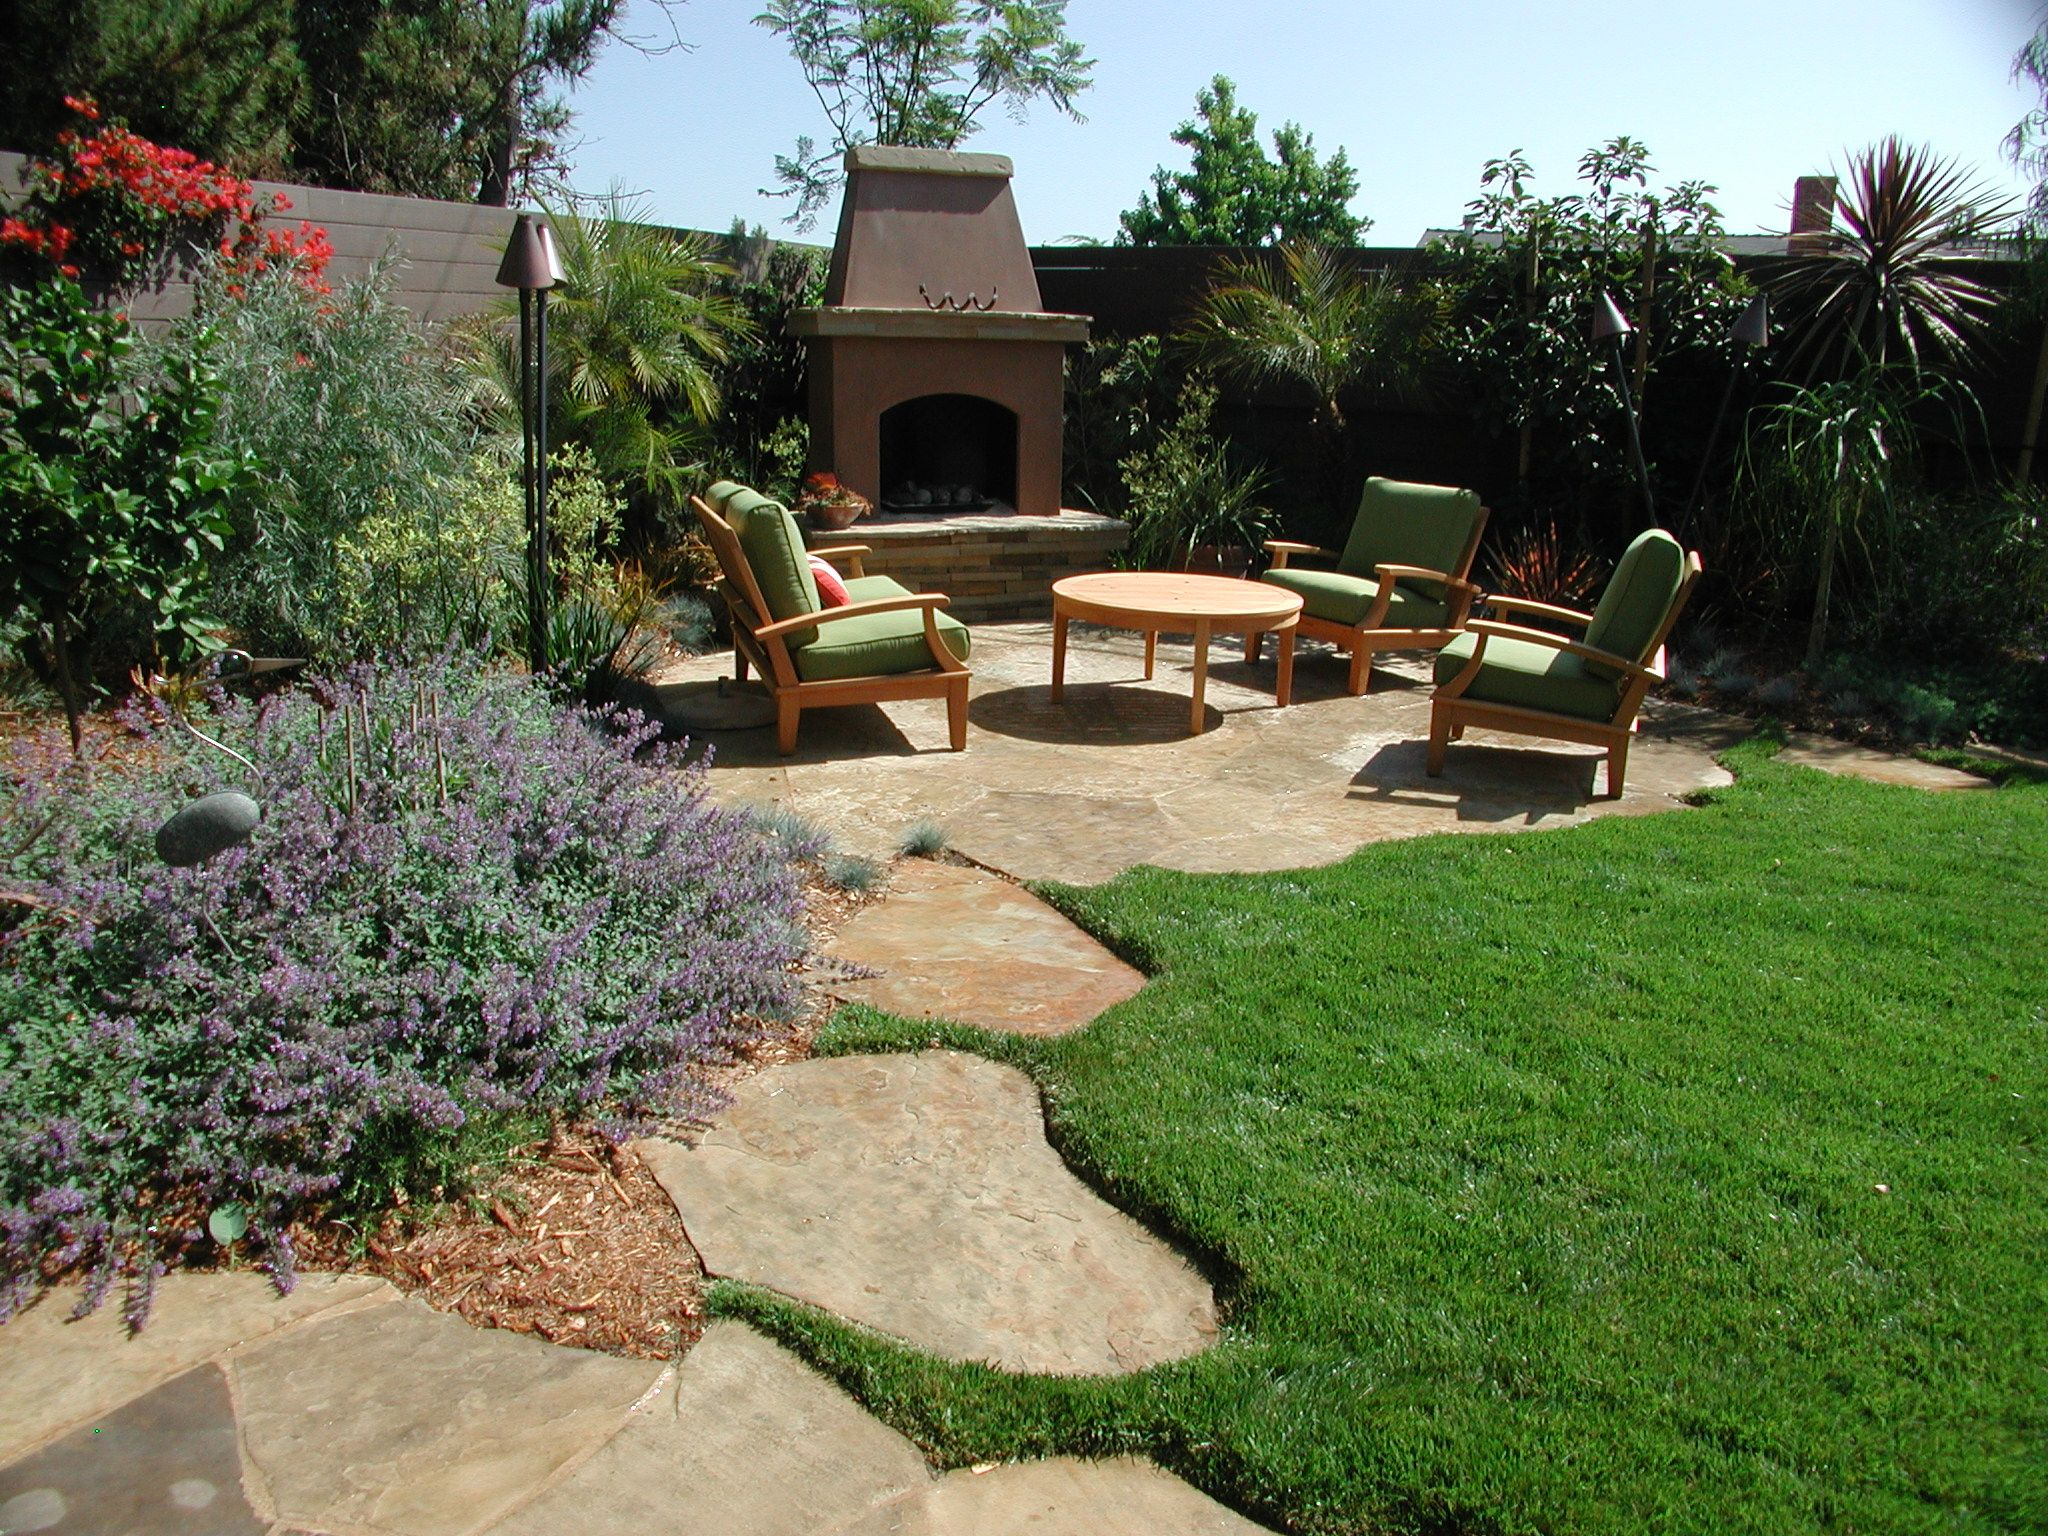 Landscape Design At Private Residence In Los Angeles Walkway To